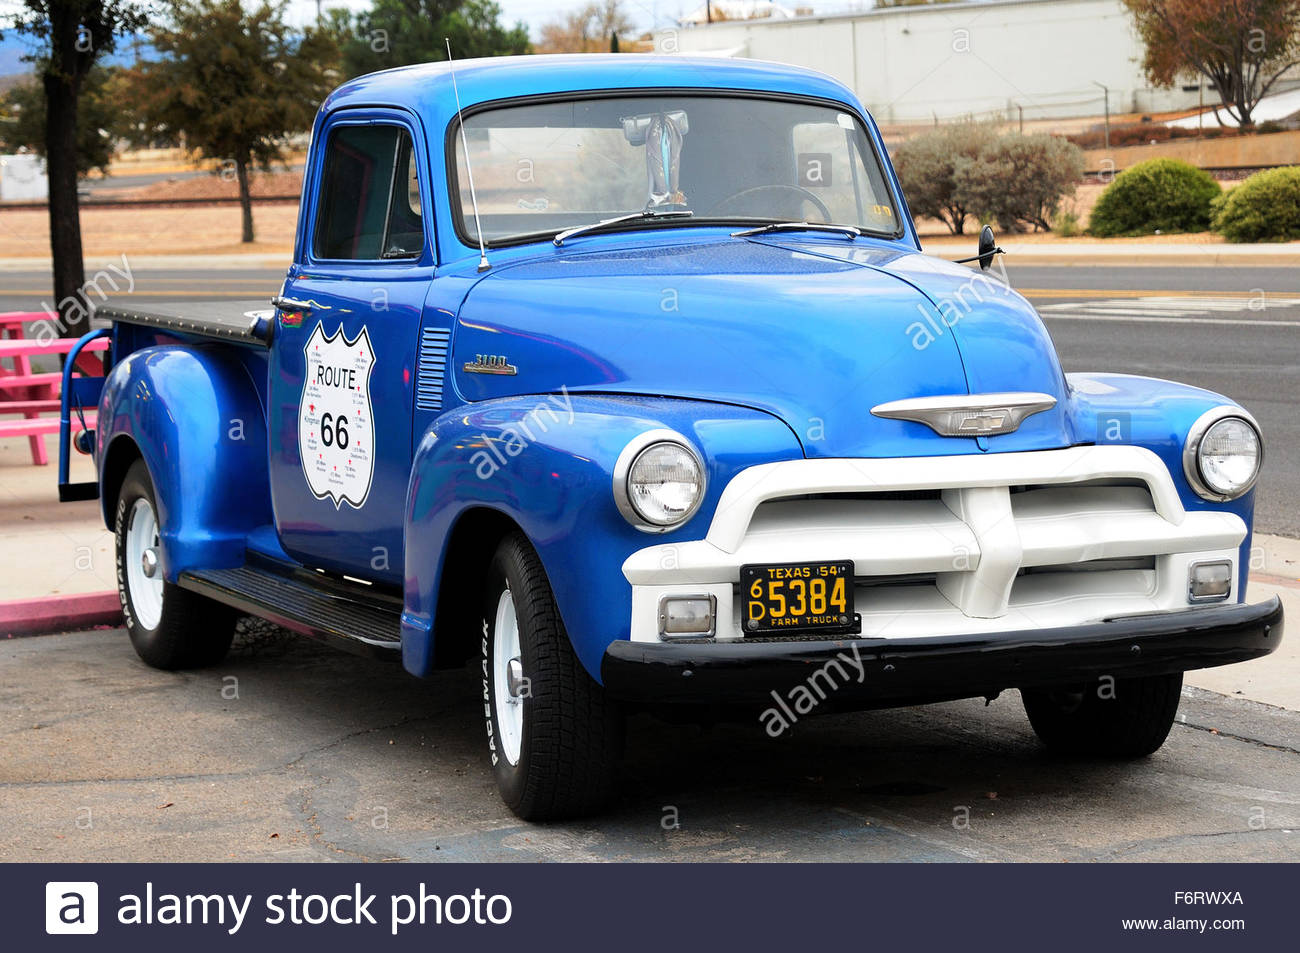 Chevy truck parked in the entrance of a bar in Kingsman, Arizona on the Route 66 Stock Photo